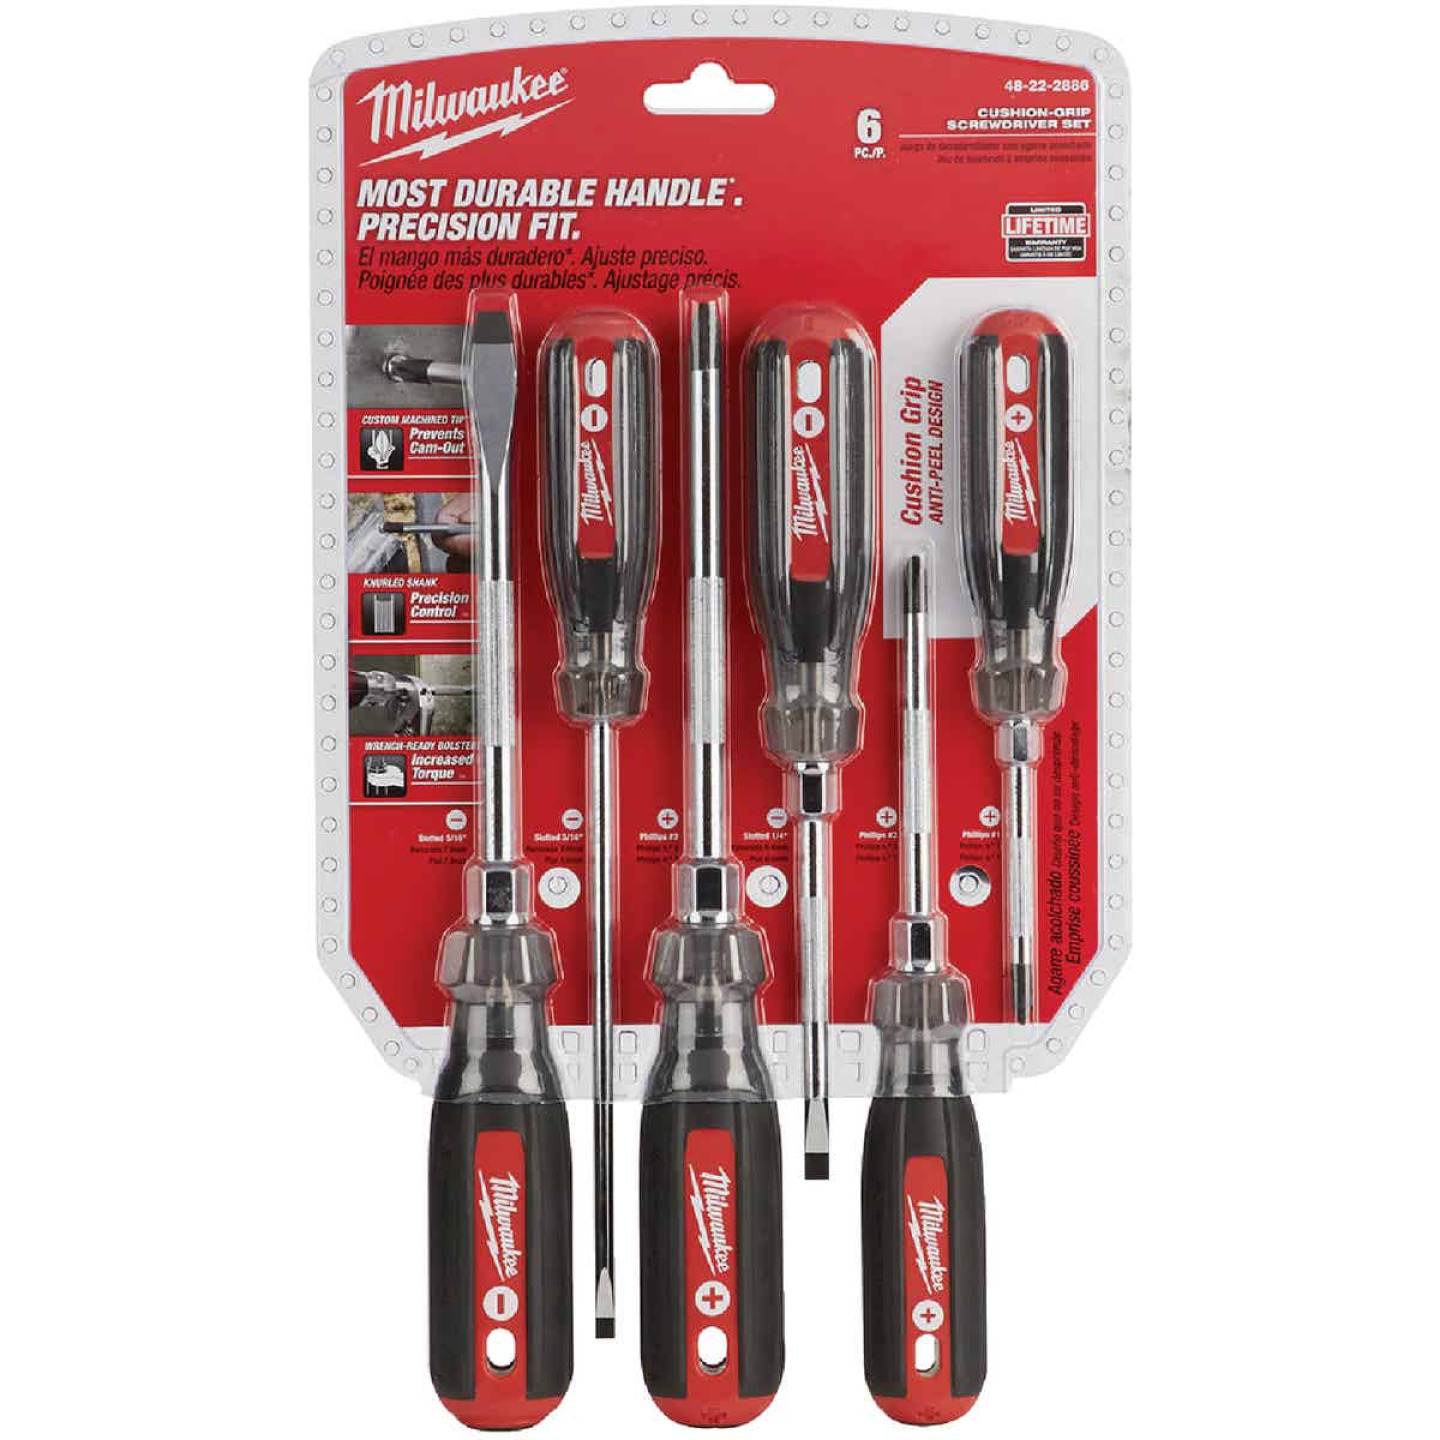 Milwaukee Cushion Grip Screwdriver Set (6-Piece) Image 2